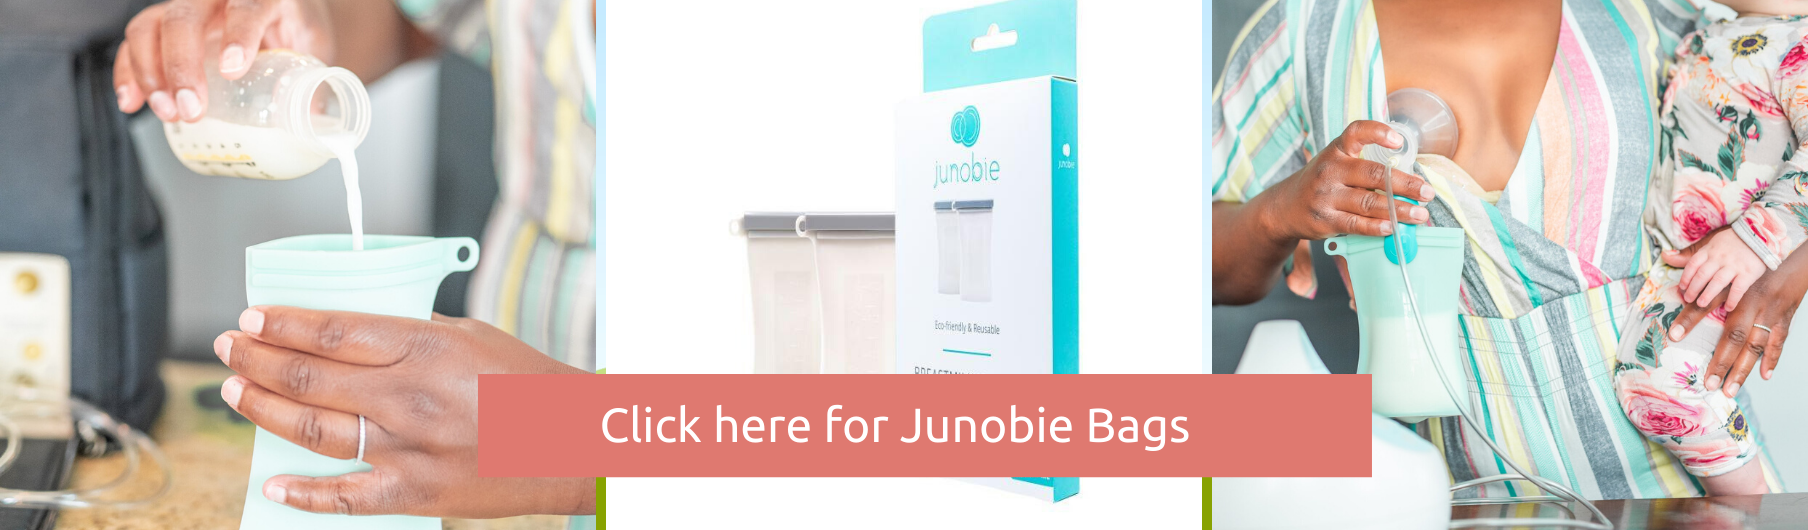 Introducing Junobie Bags: Reusable milk and food storage bags